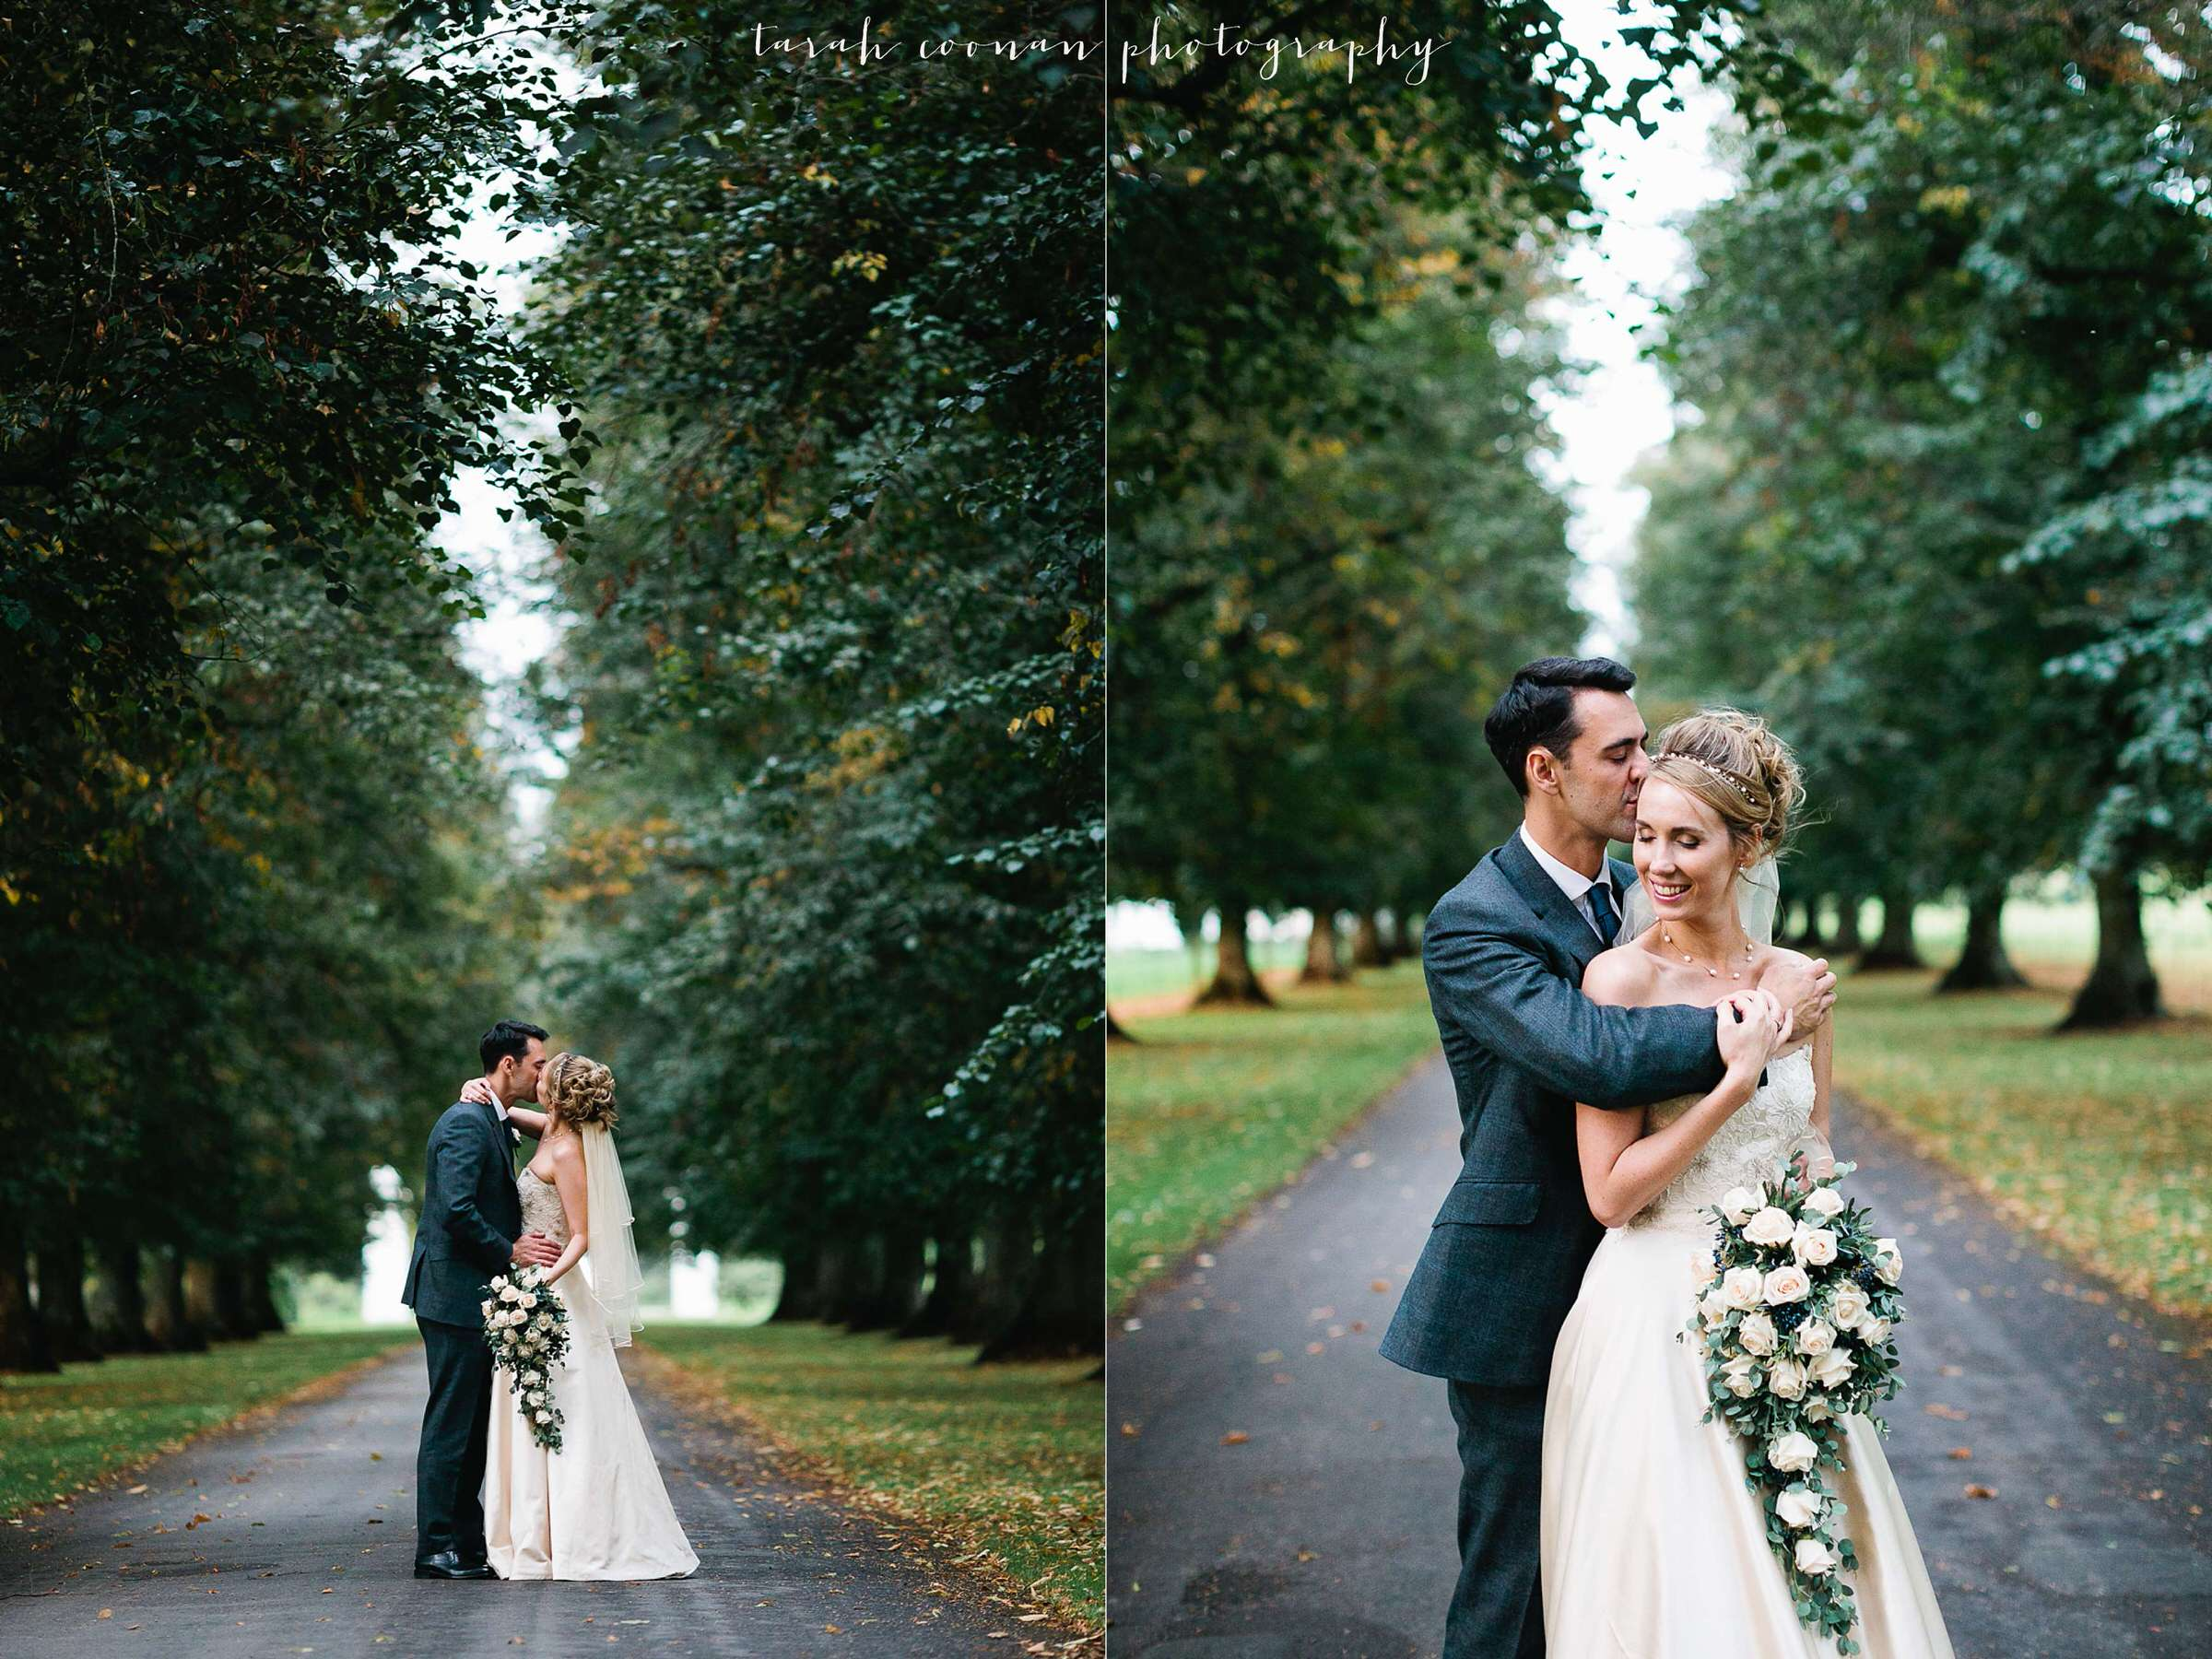 Avington Park wedding - Charlotte & Pete